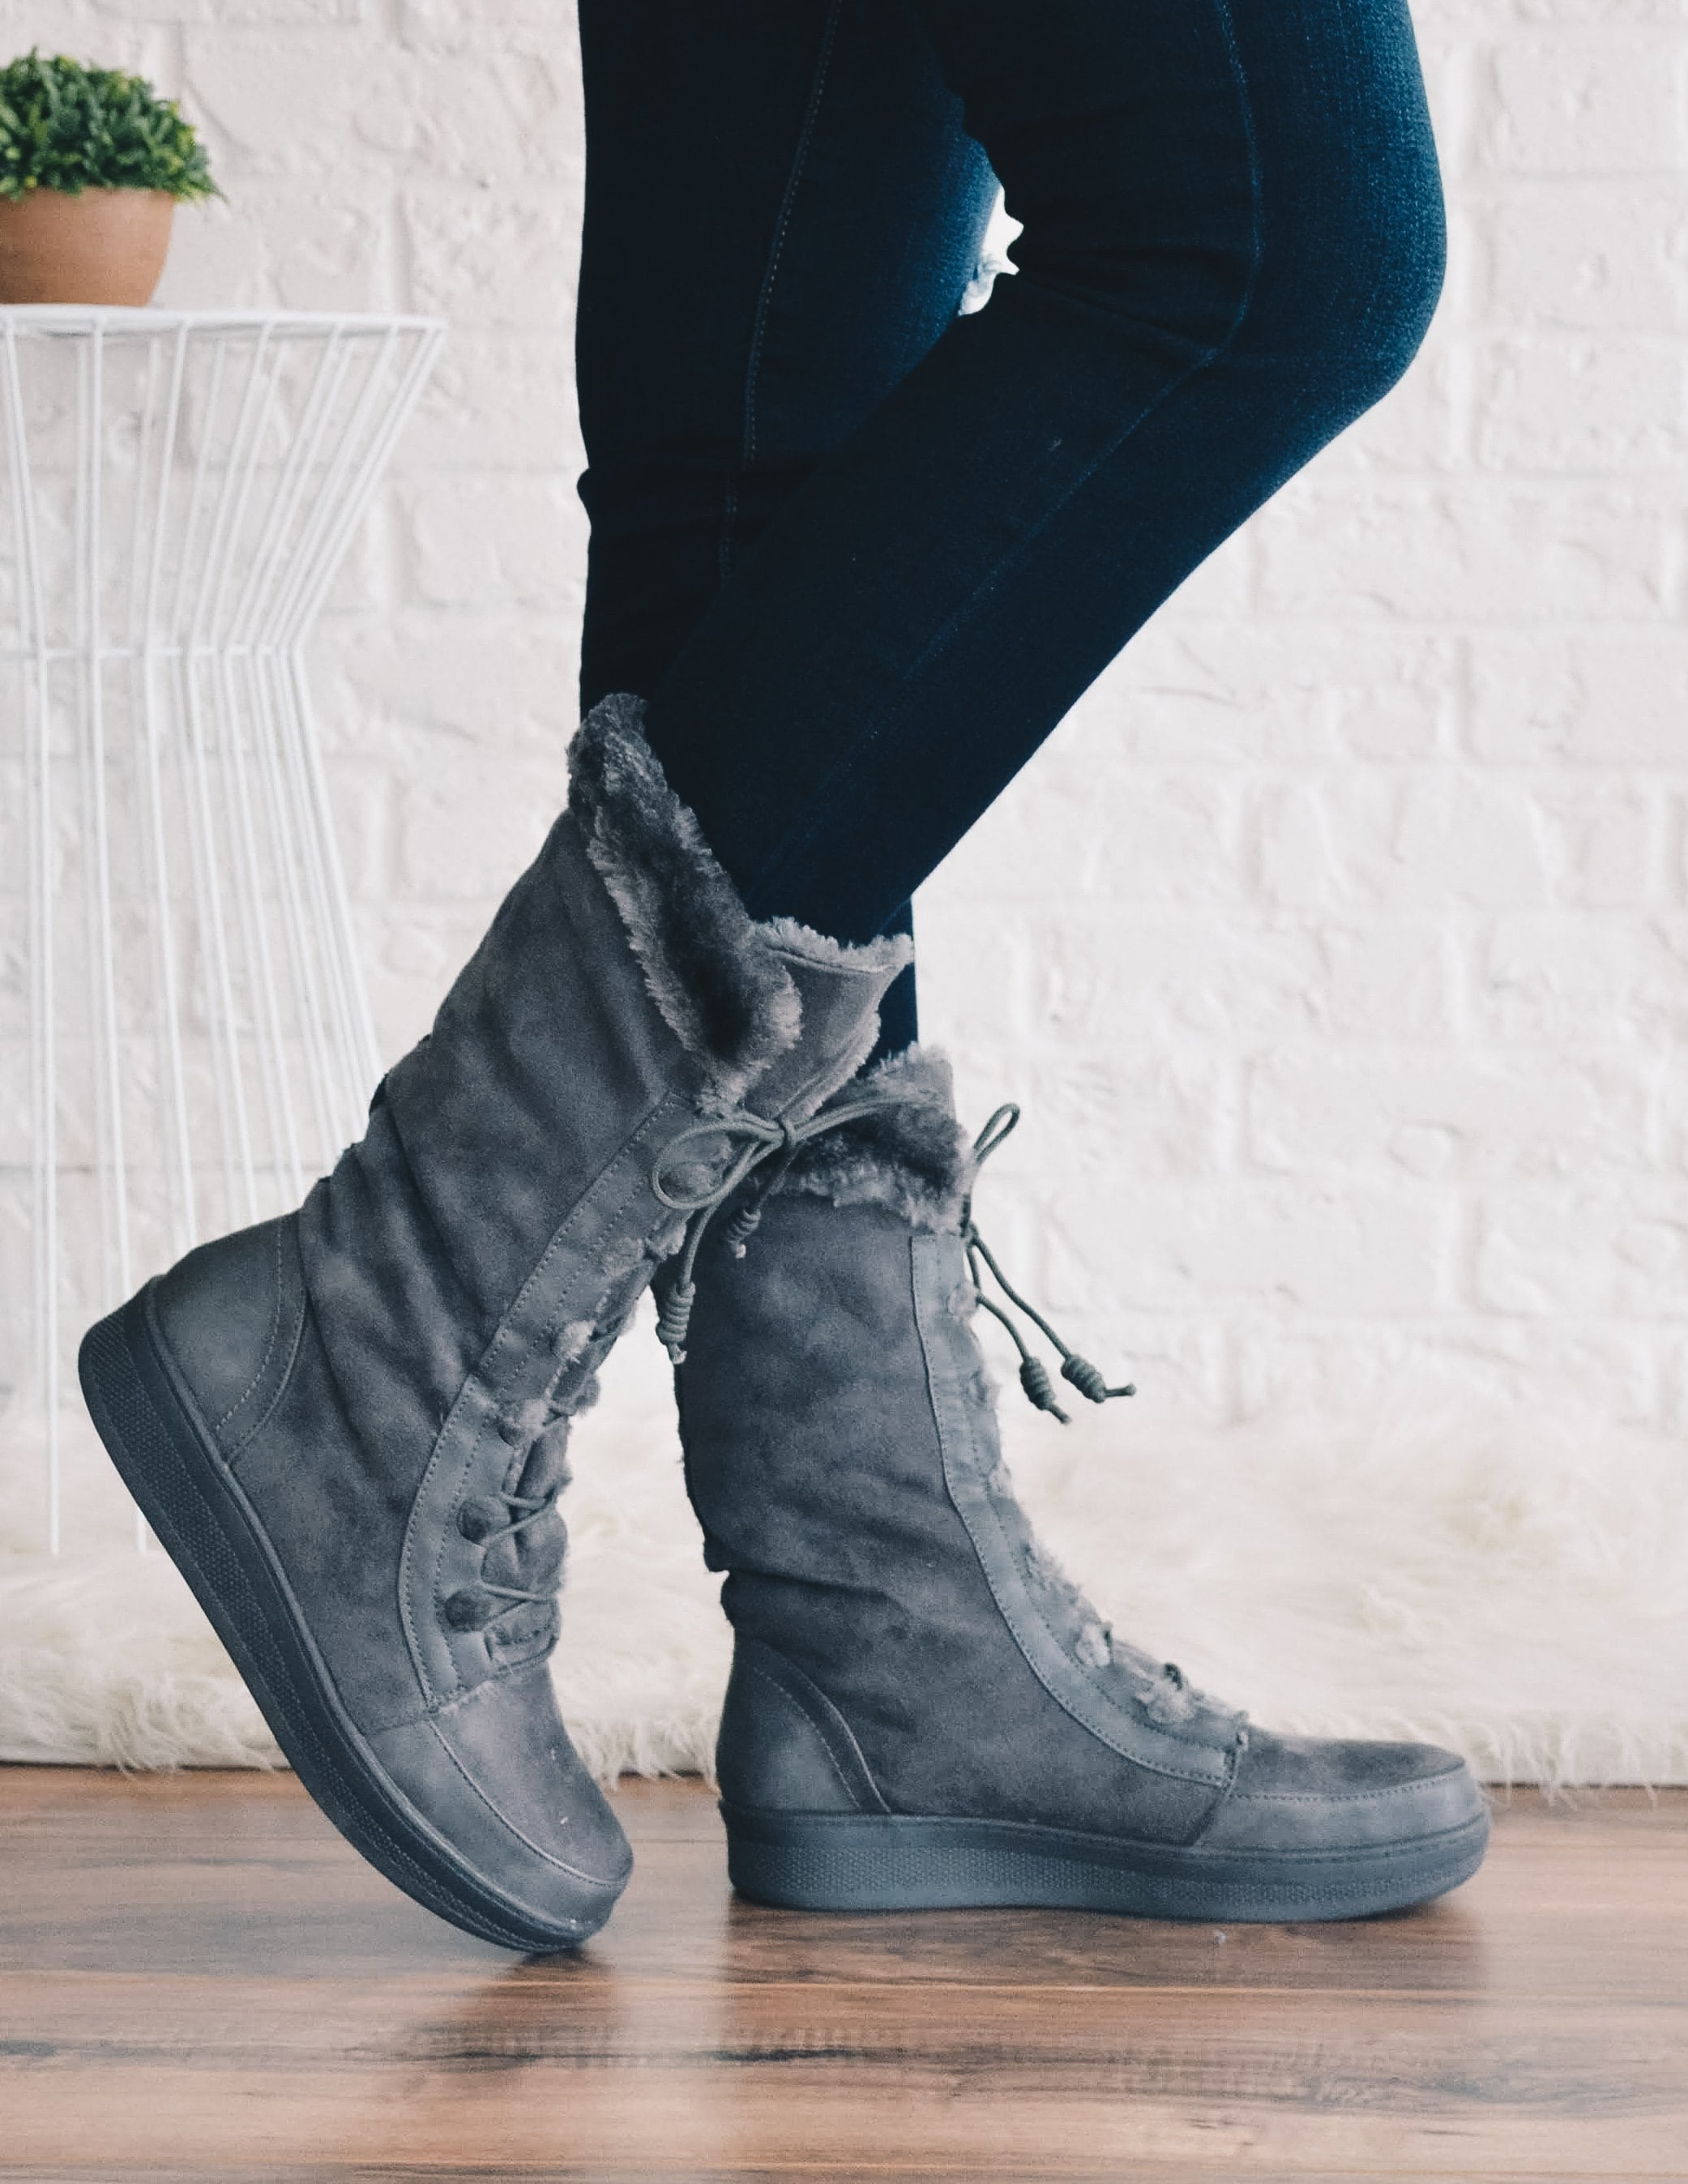 Grey marshmallow boots with fur trim and lace up closure - elle bleu shoes